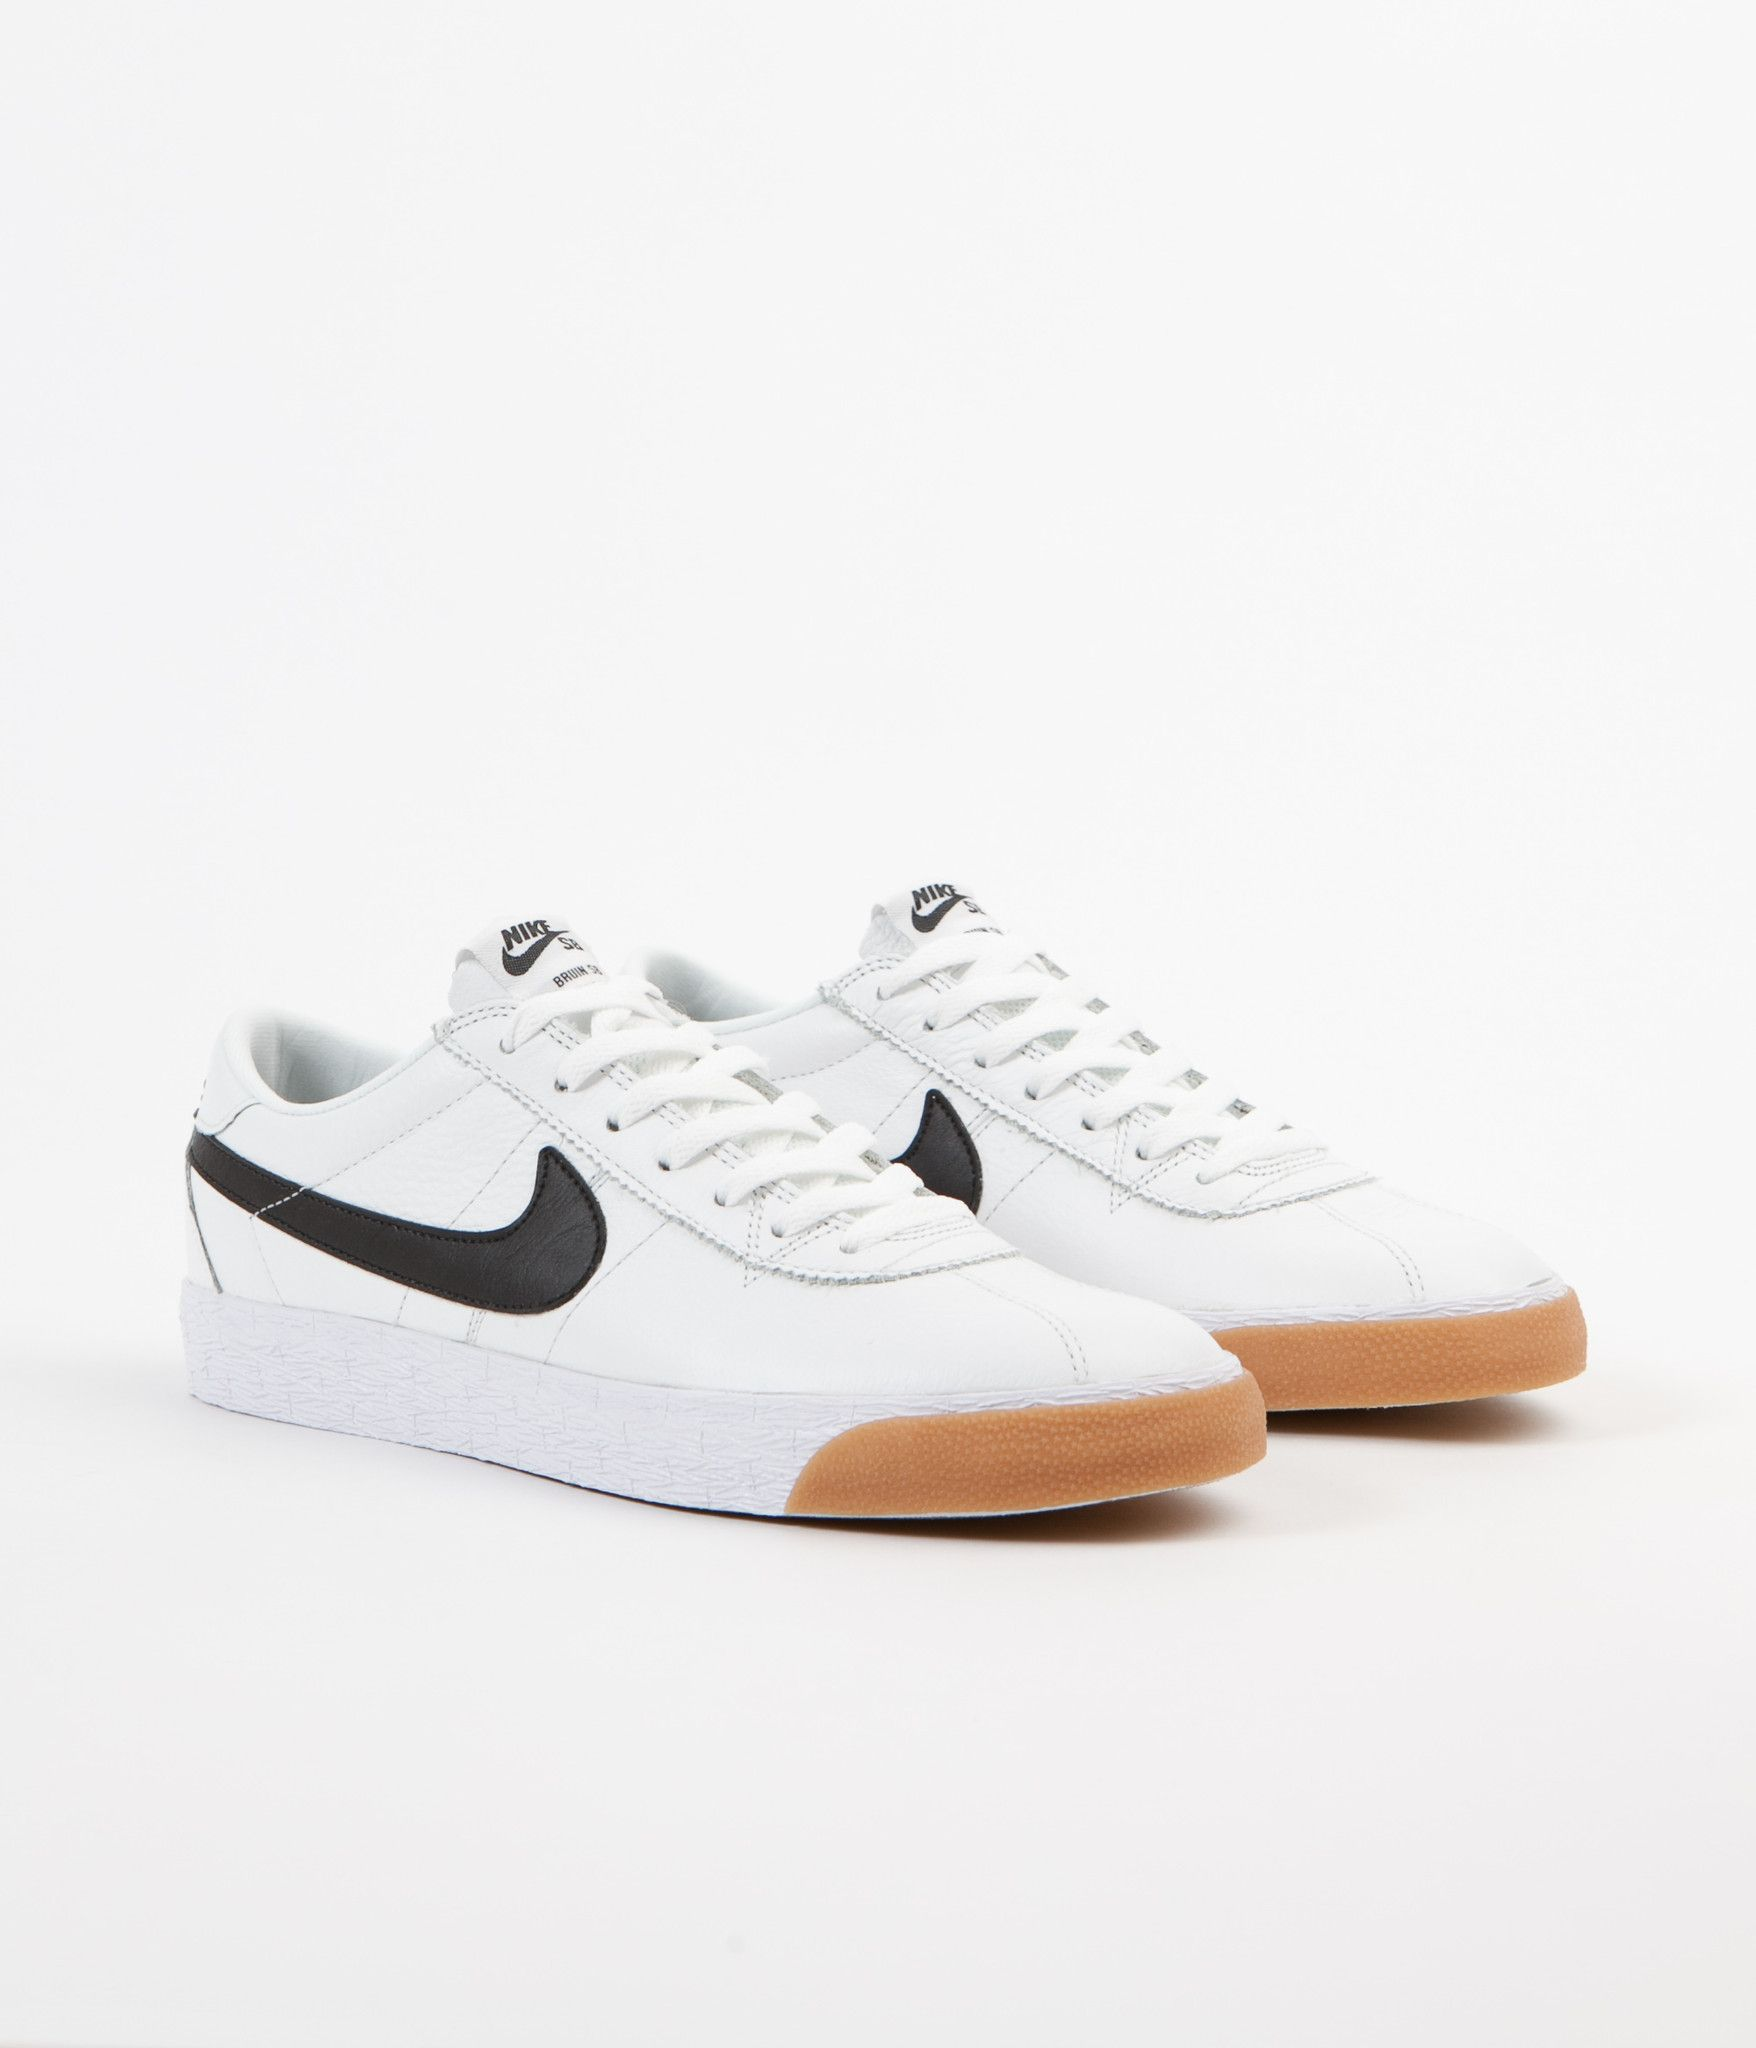 nike-sb-bruin-premium-se-shoes-summit-white-